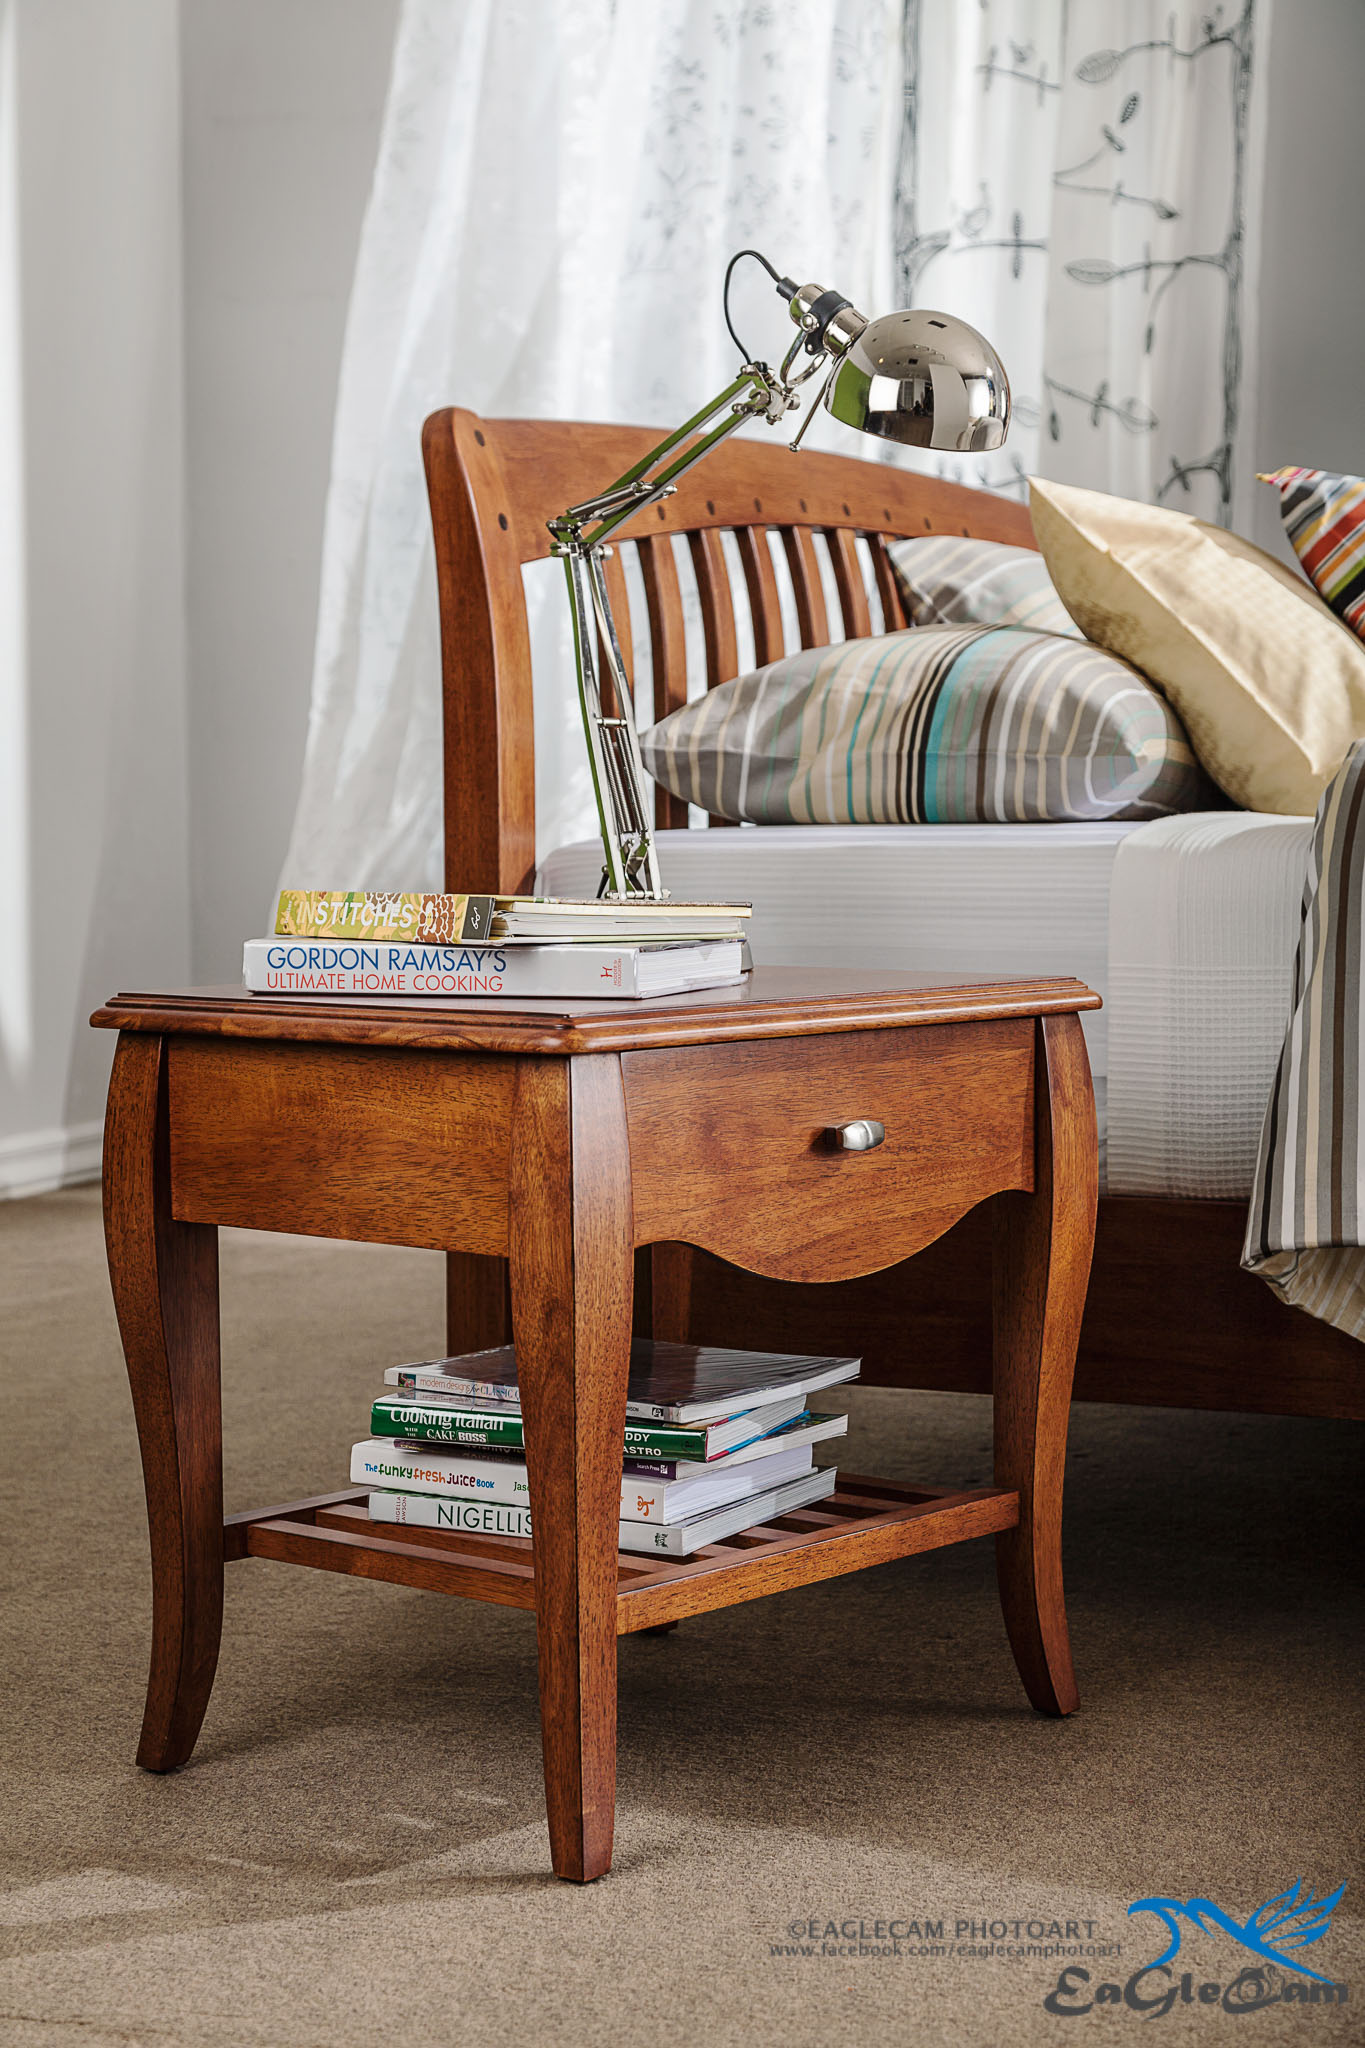 Furniture Photography_12